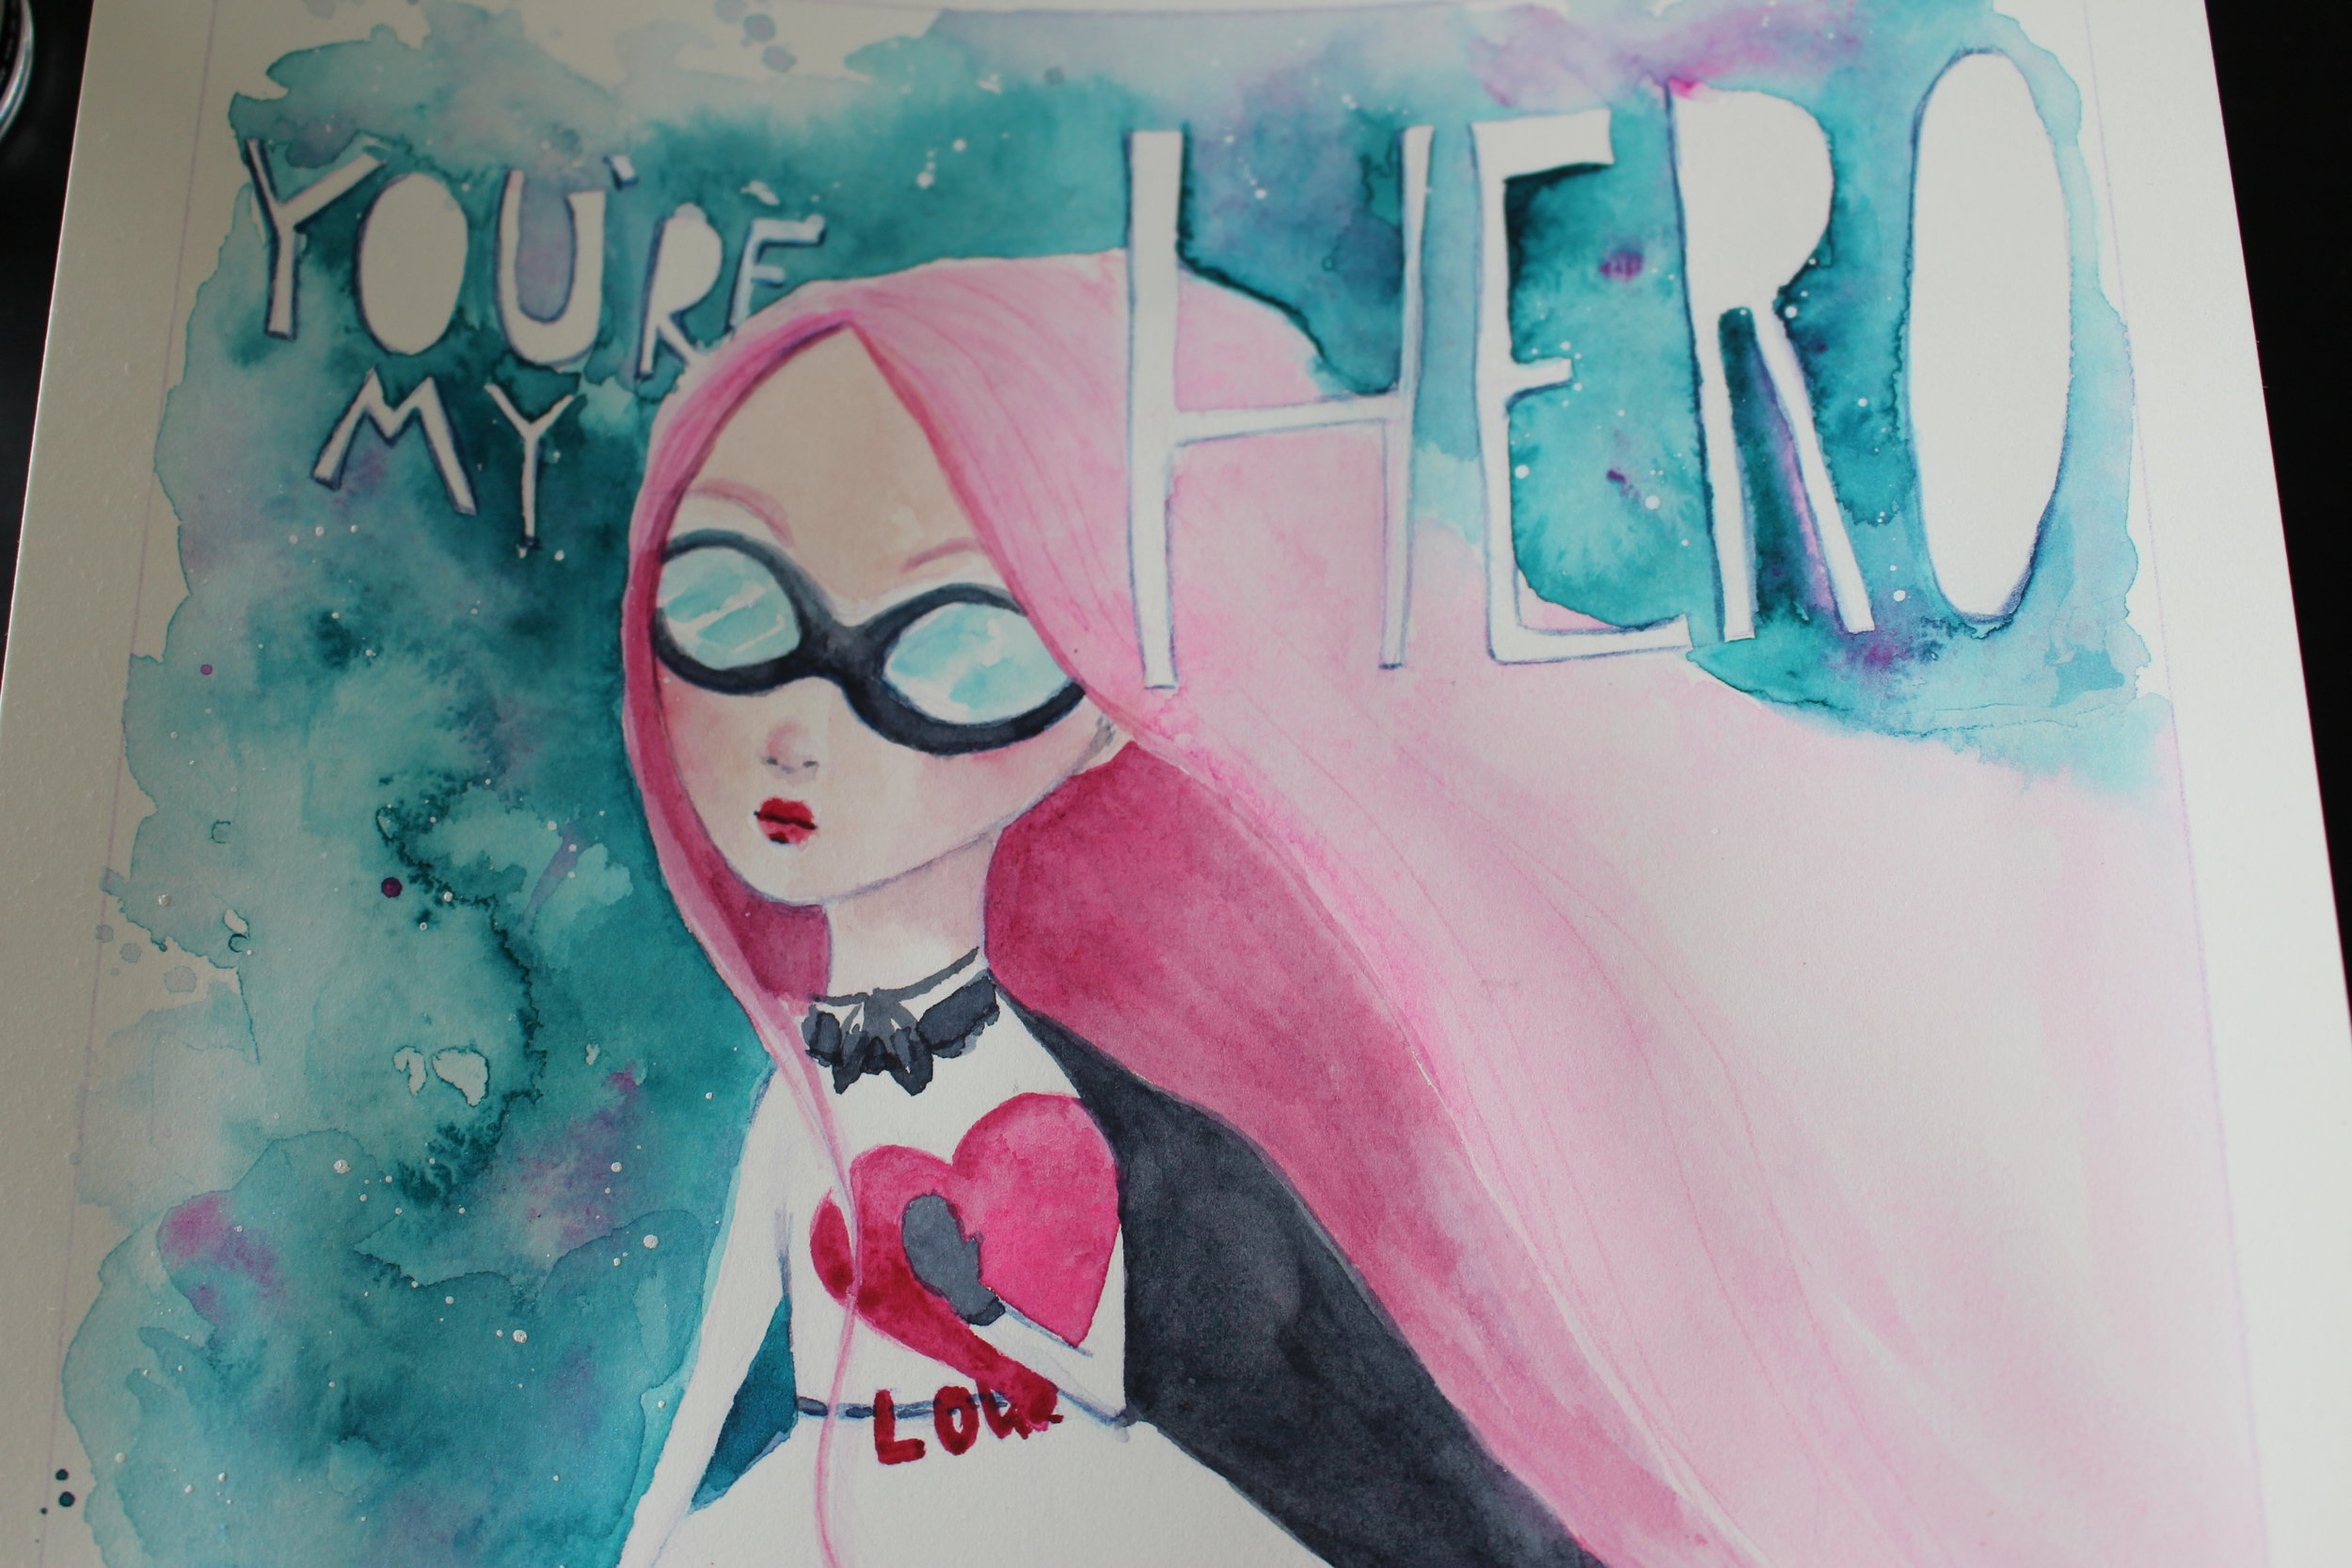 Learn to draw and paint a watercolor of a whimsical superhero! I will demonstrate using watercolor but this lesson will work in any medium.